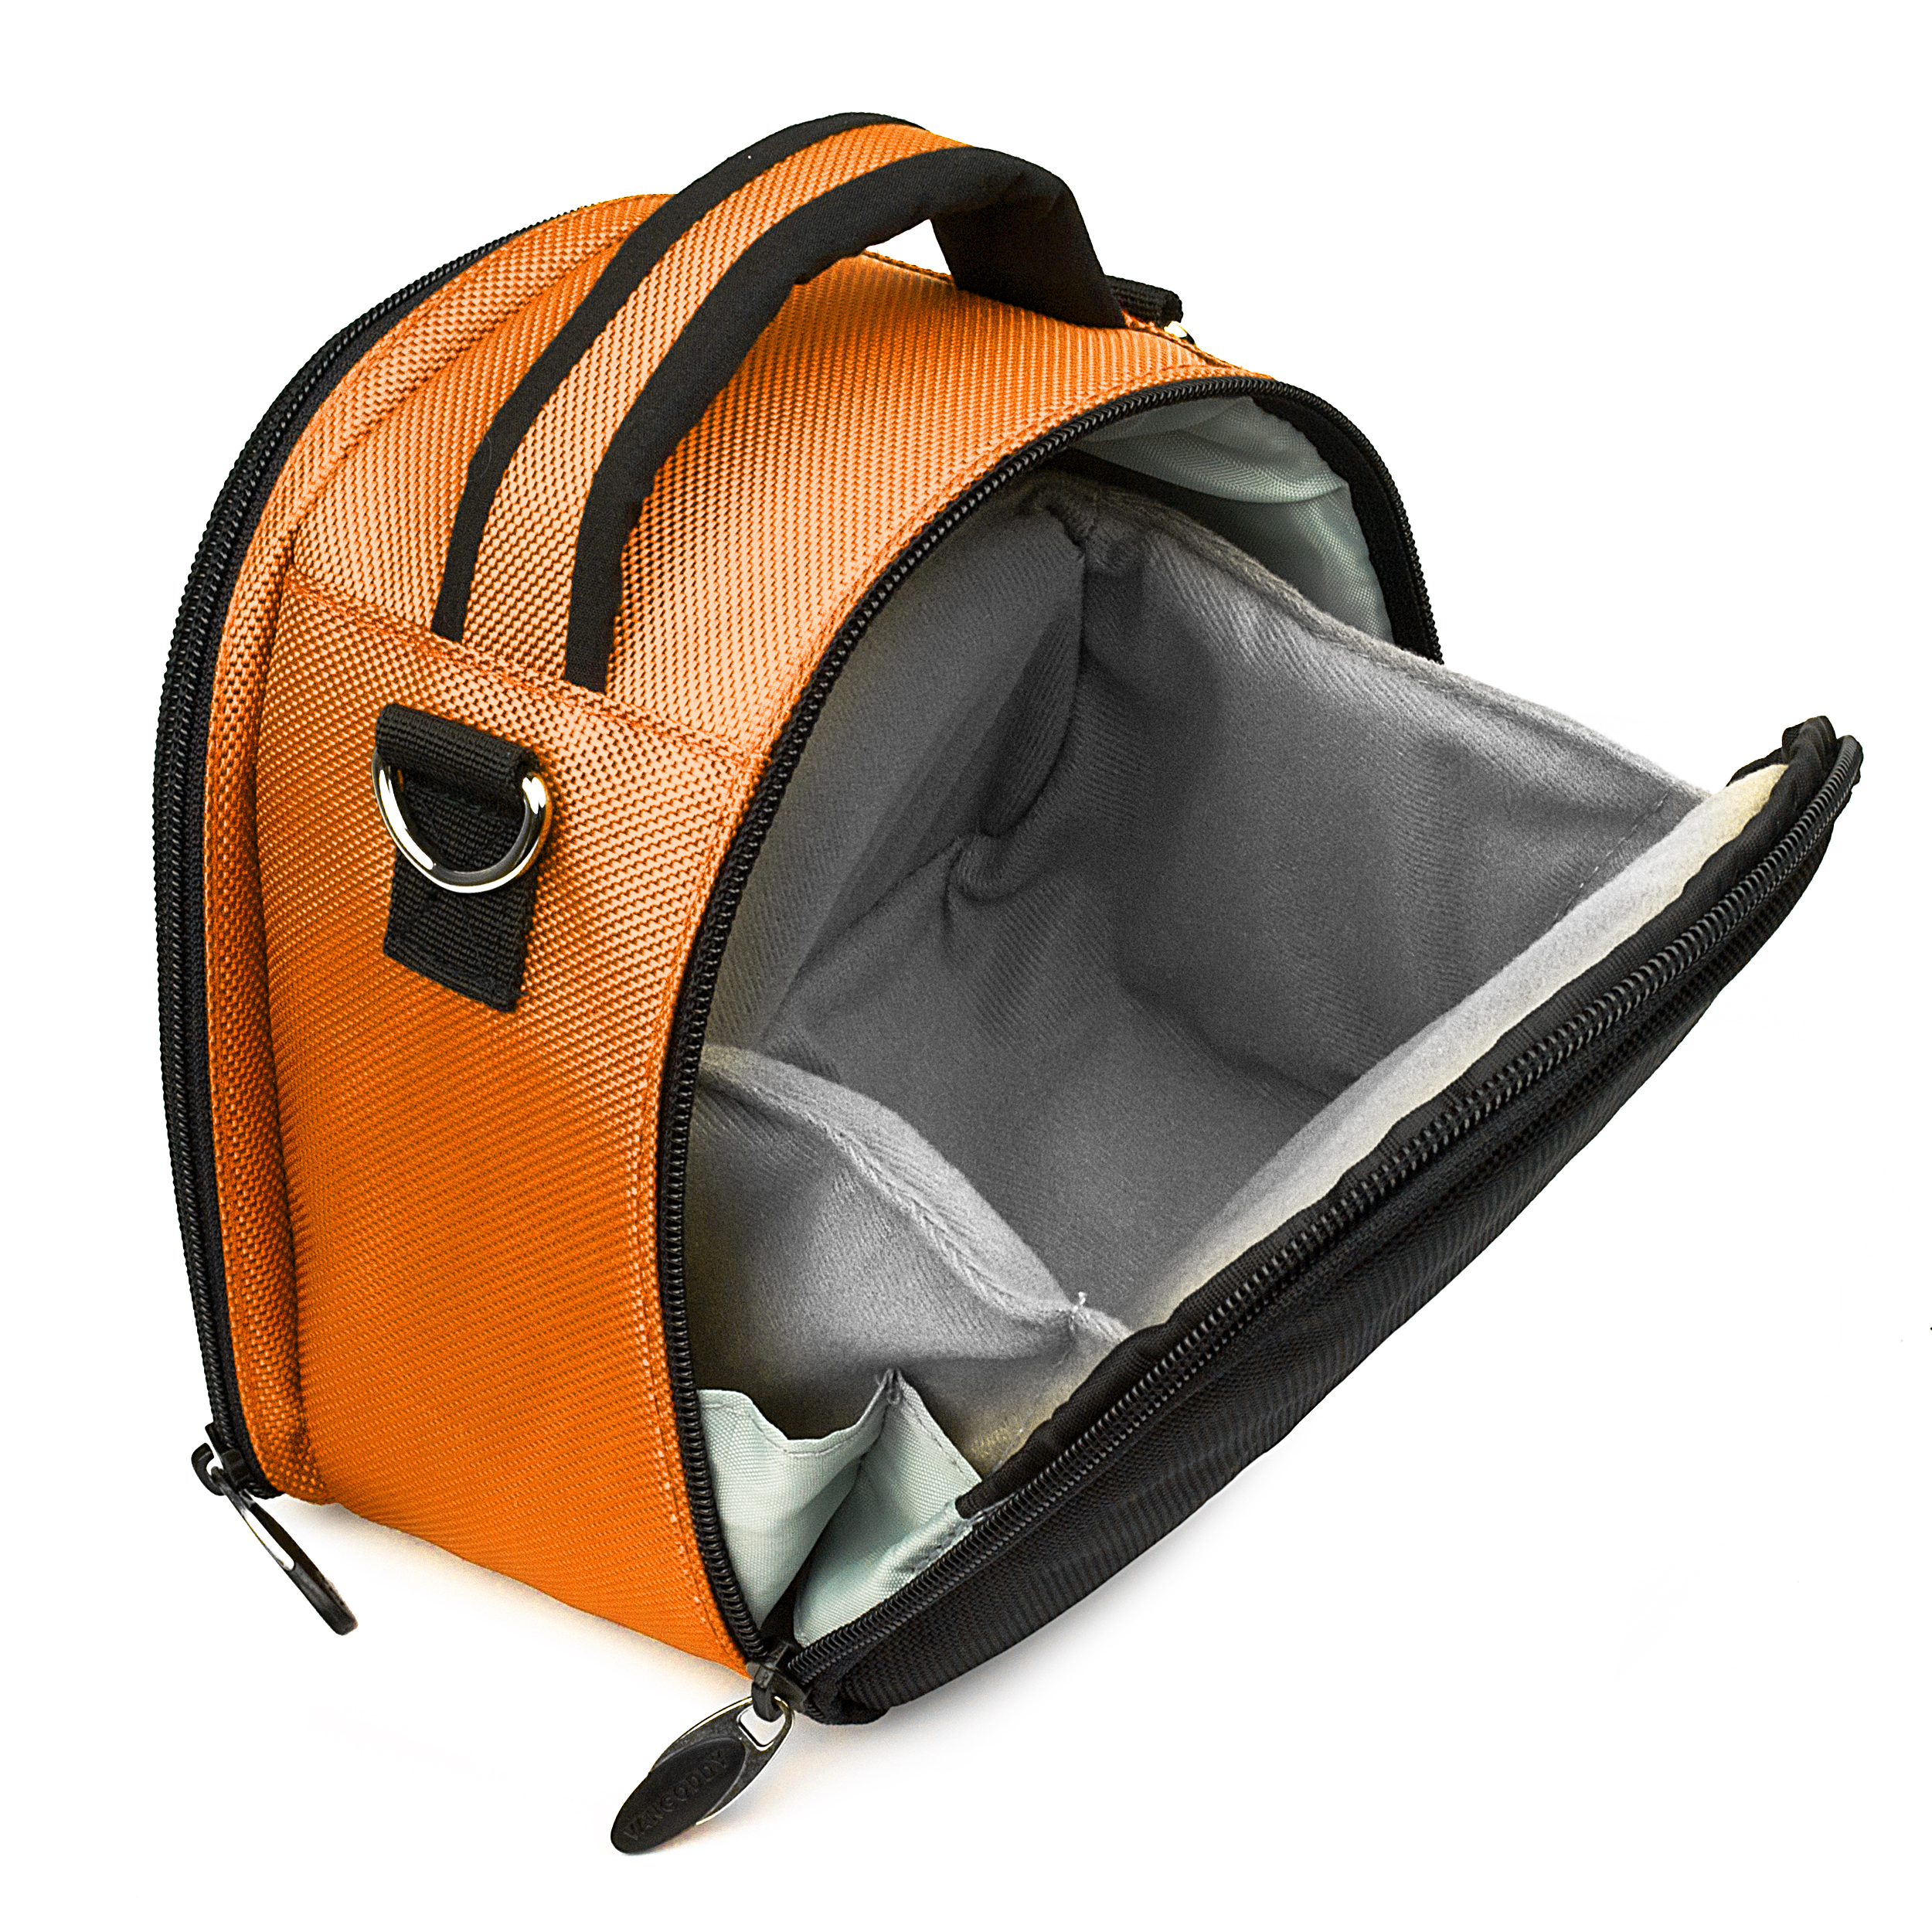 Laurel Case for DSLR Cameras (Orange)